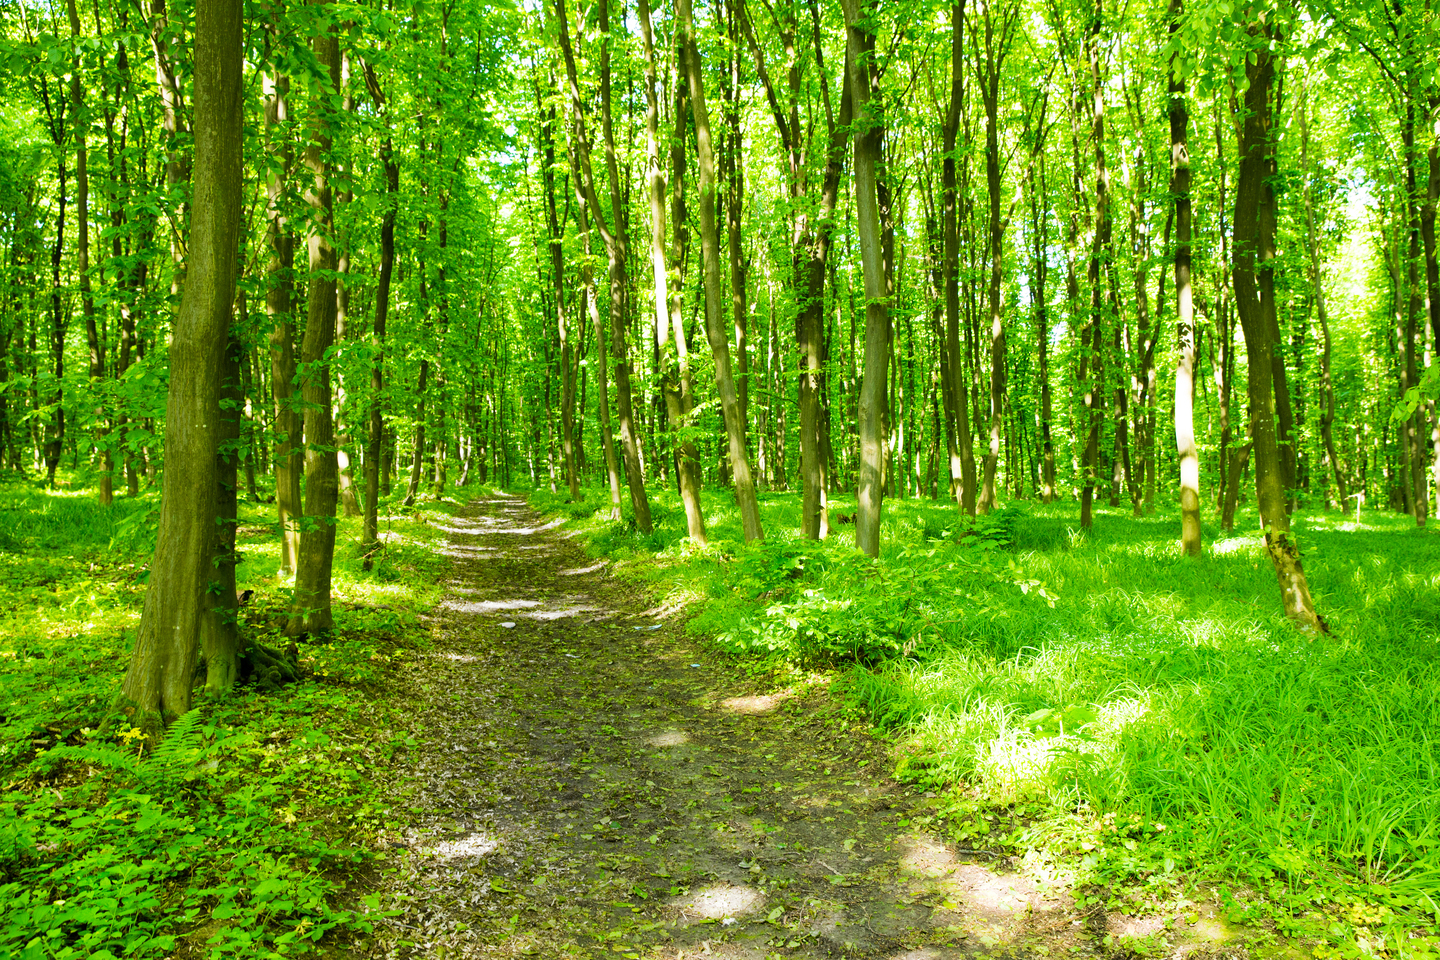 Path through the green forest